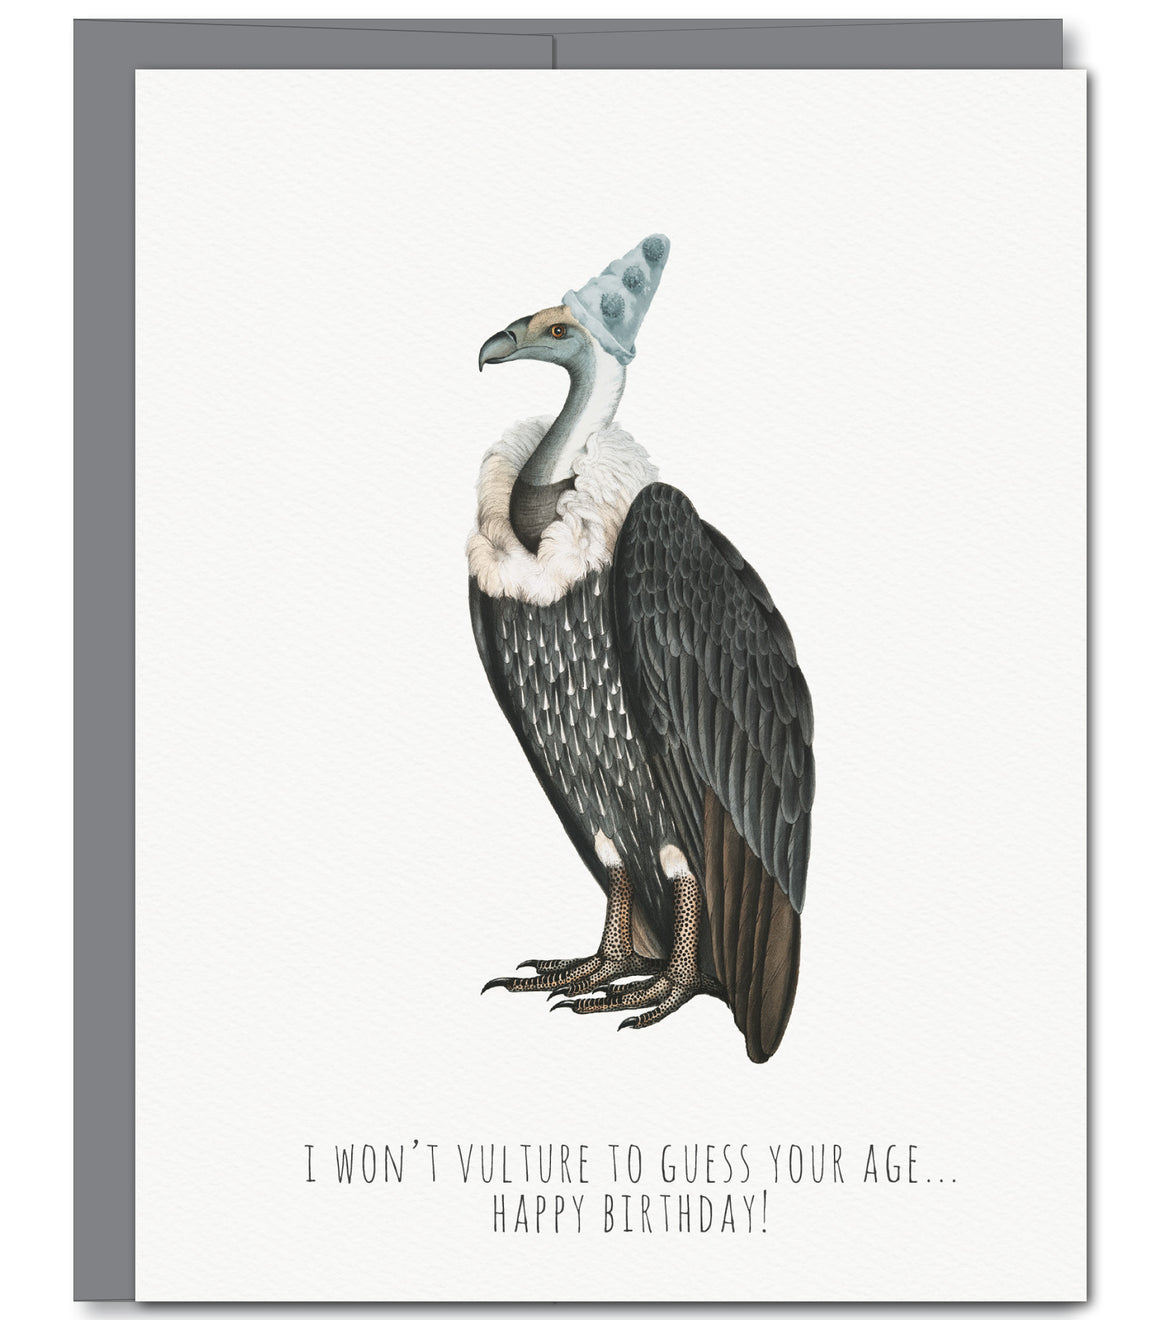 Vulture Birthday Glitter Greeting Card | Sylvan Gate Design